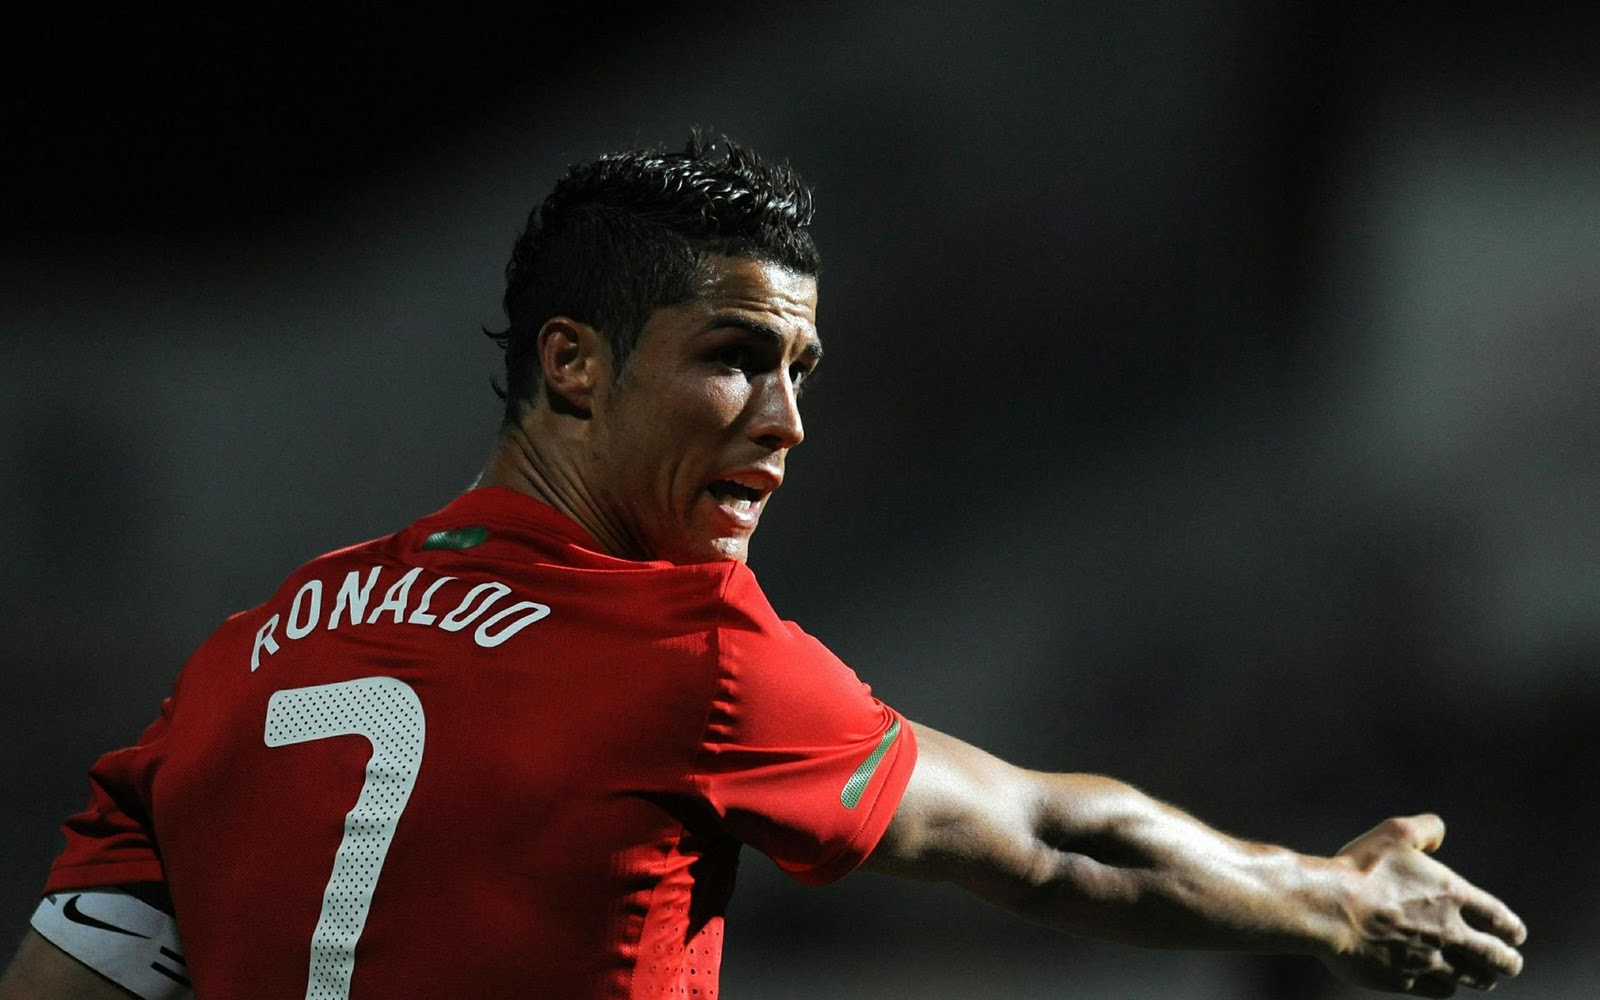 cristiano ronaldo essay Cristiano ronaldo led portugal at the football world cup in south africa in 2010 but he had a quiet tournament, scoring only one goal as the team was knocked out by spain in the round of 16 in 2012, he was the main inspiration for the team as he scored three goals to lead the team to the semifinal of the european championships but portugal was.